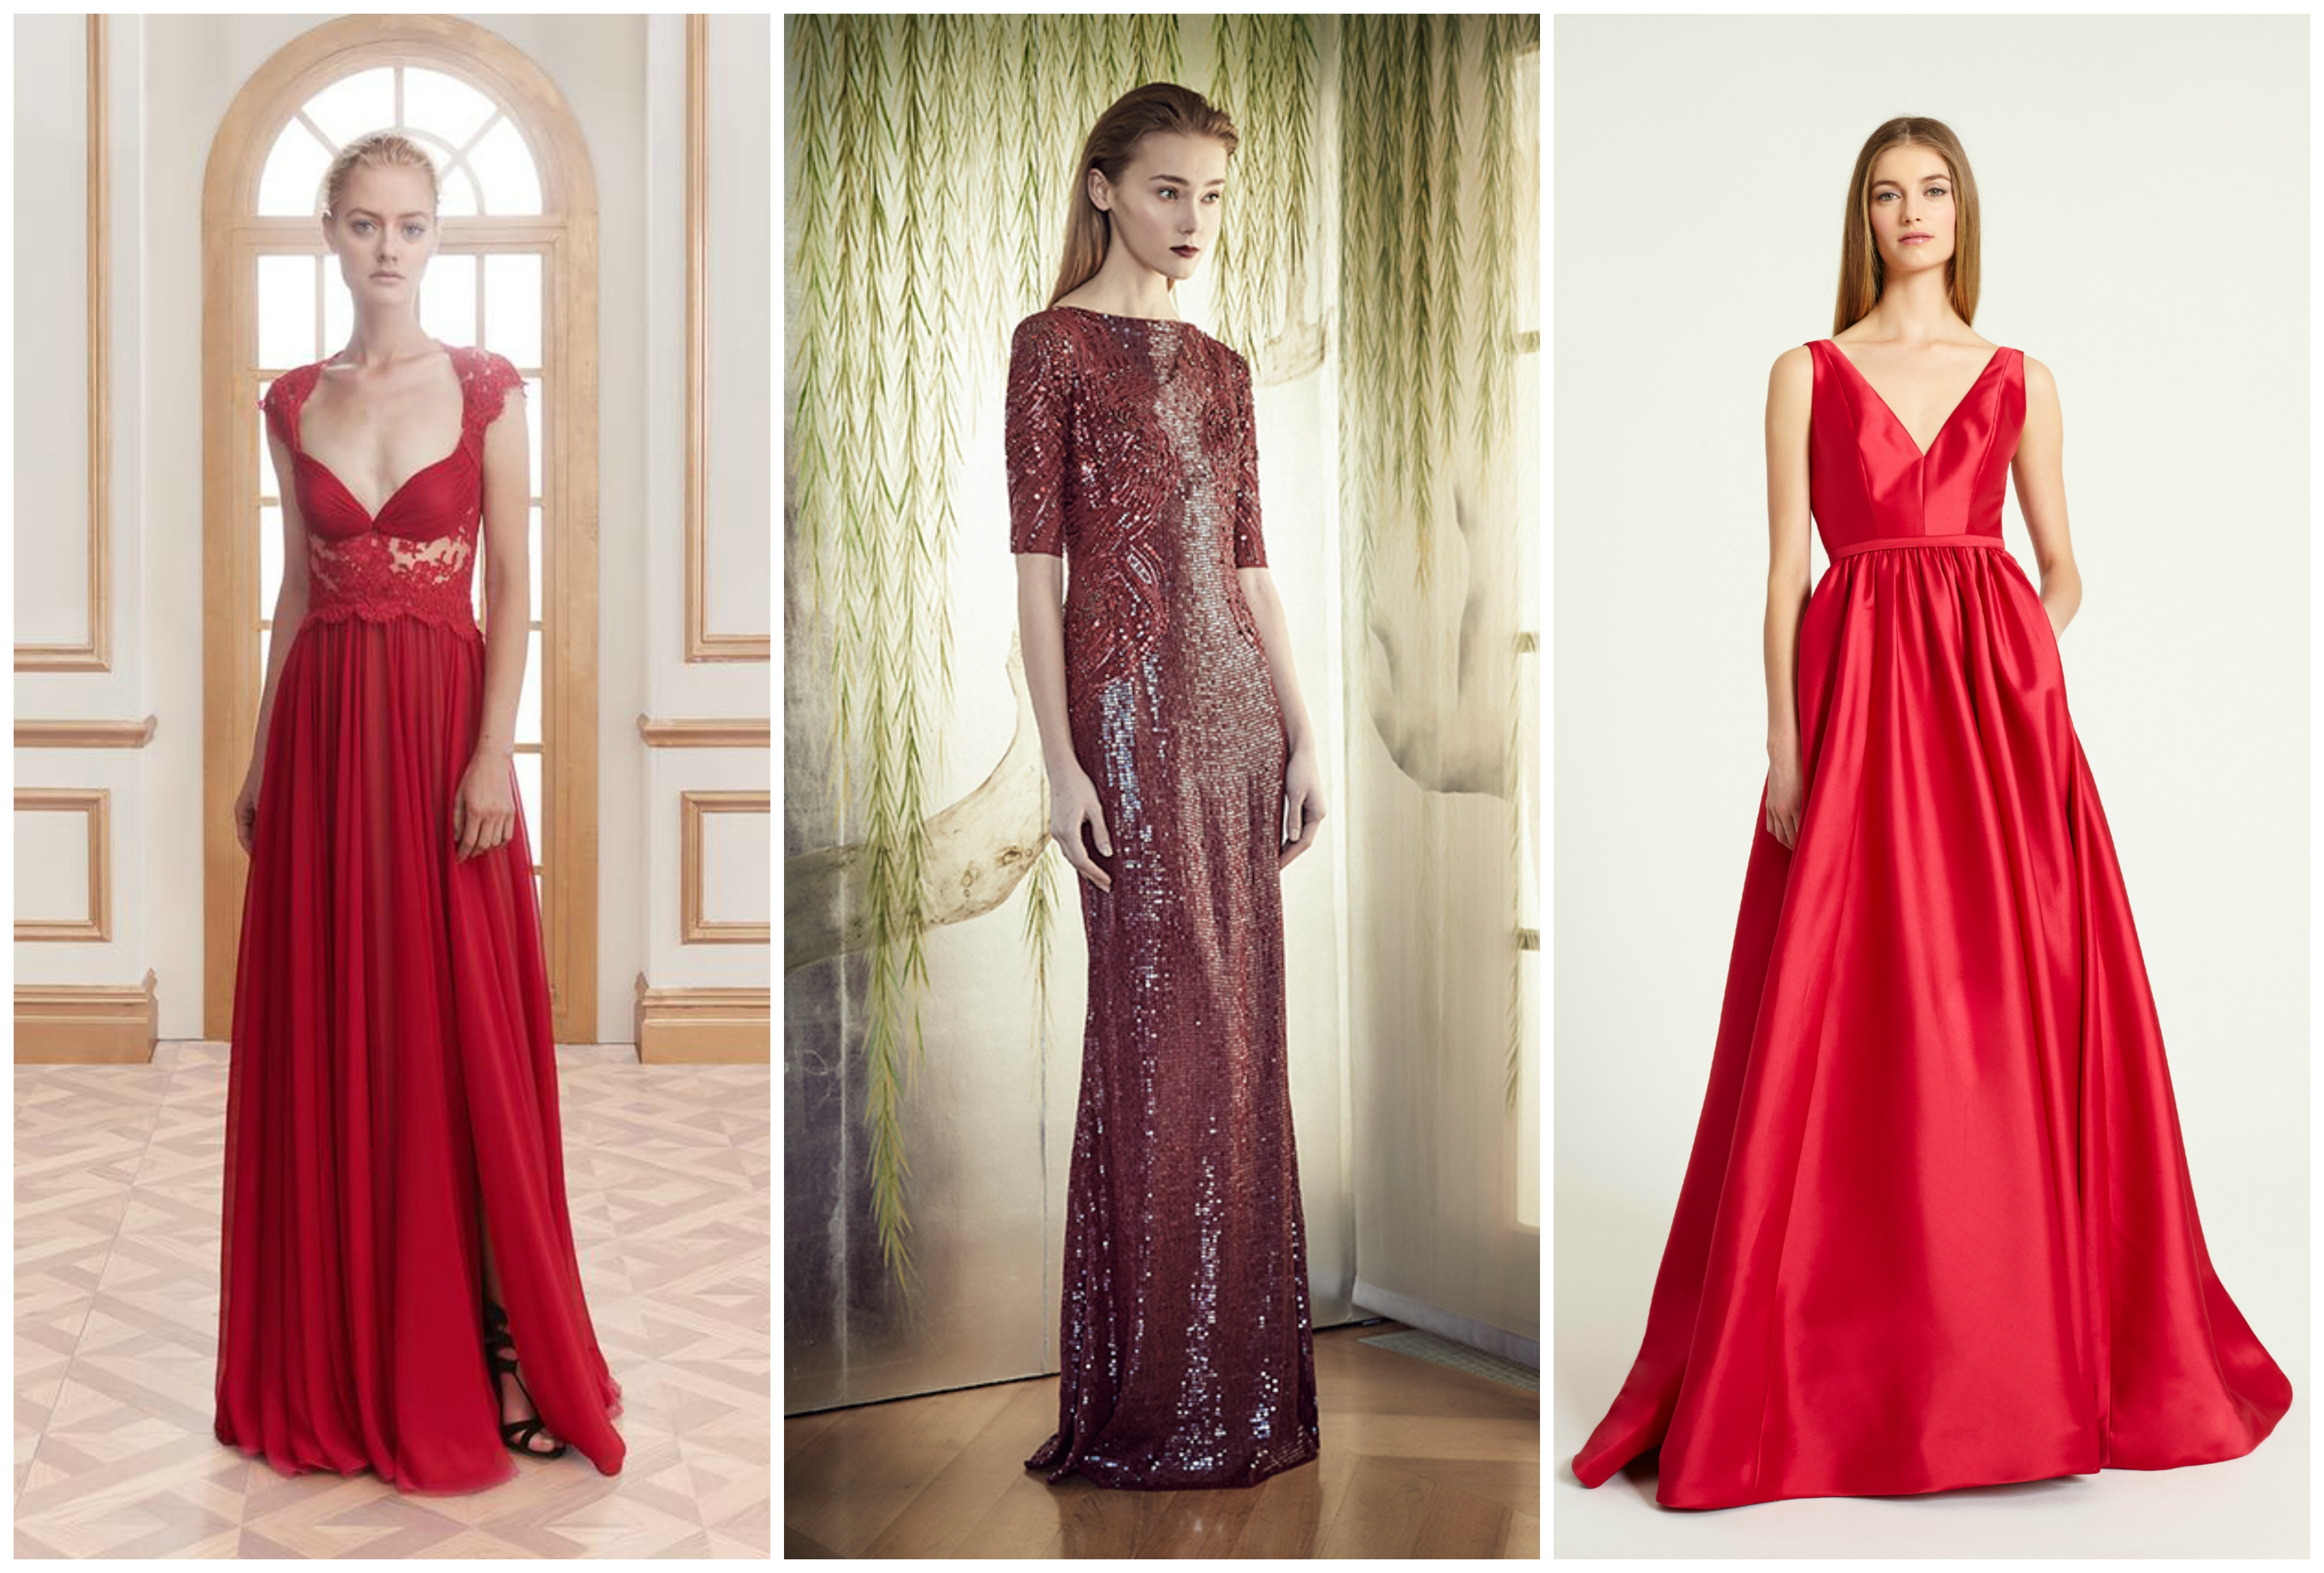 Engagement Outfits-27 Beautiful dresses To Wear On Engagement